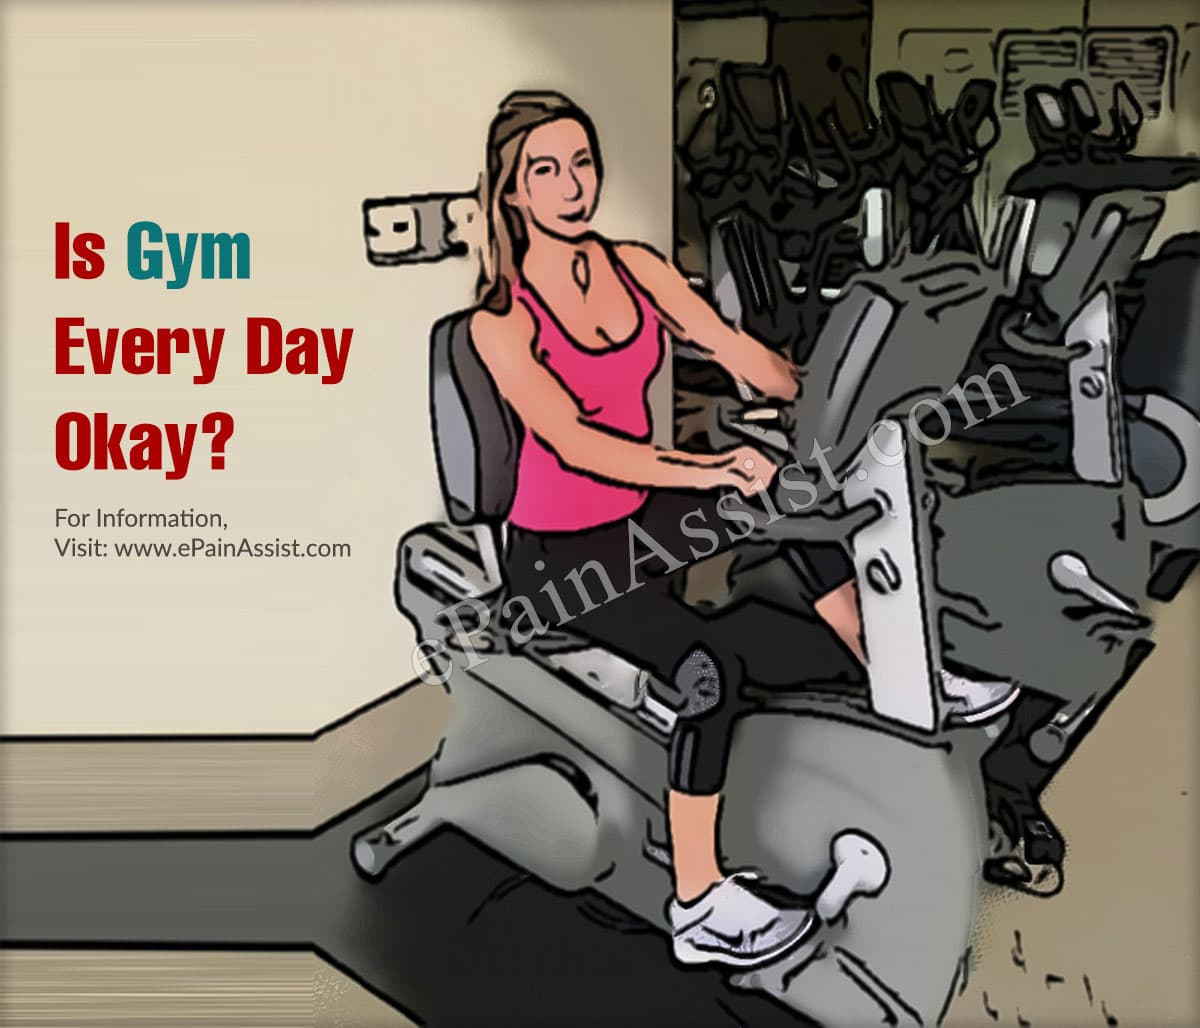 Is Gym Every Day Okay?